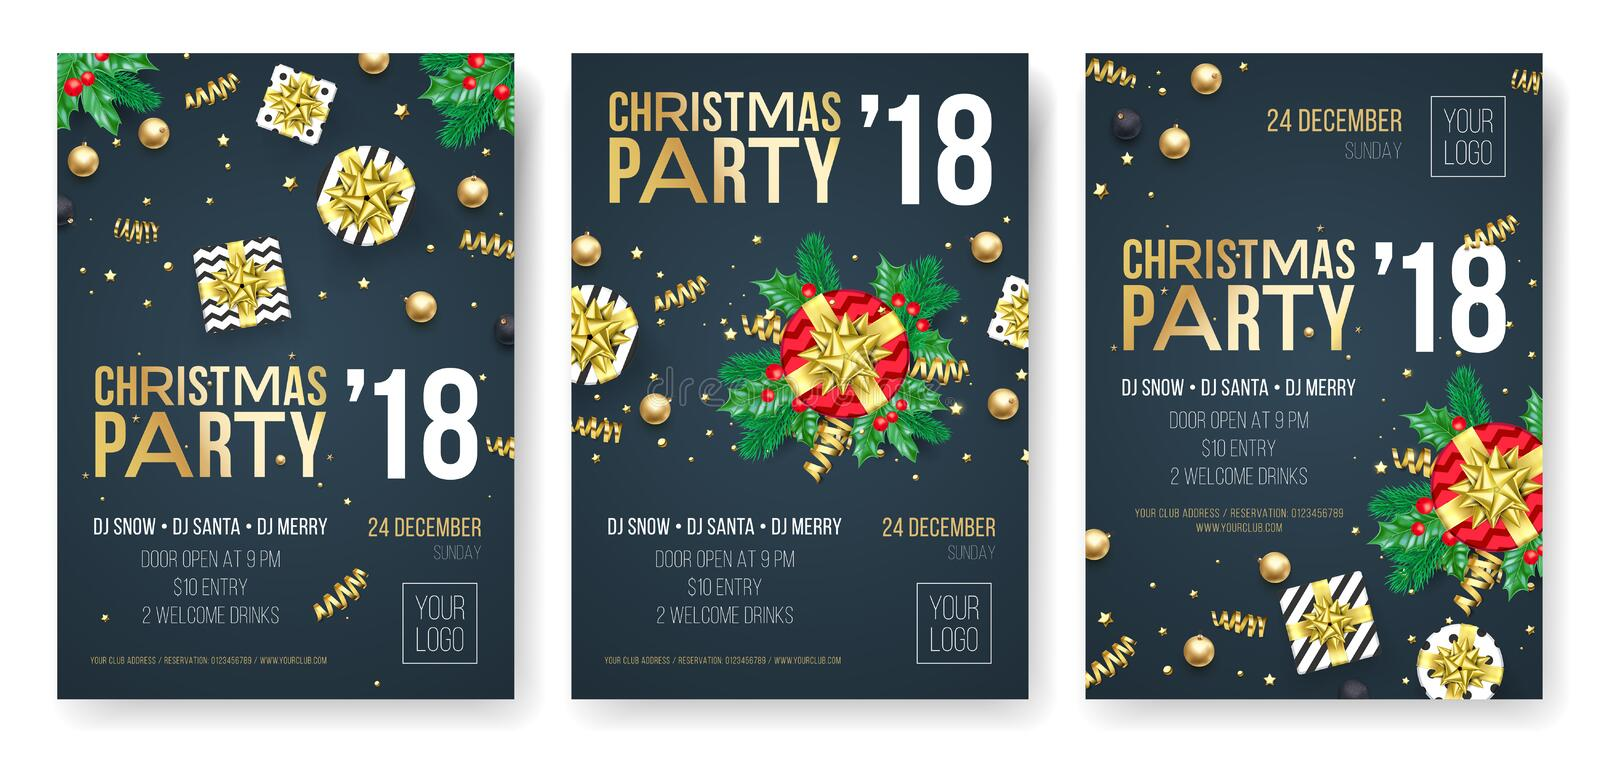 Christmas party invitation poster design template for winter holiday December 2018 celebration night. Vector present gift in golde royalty free illustration